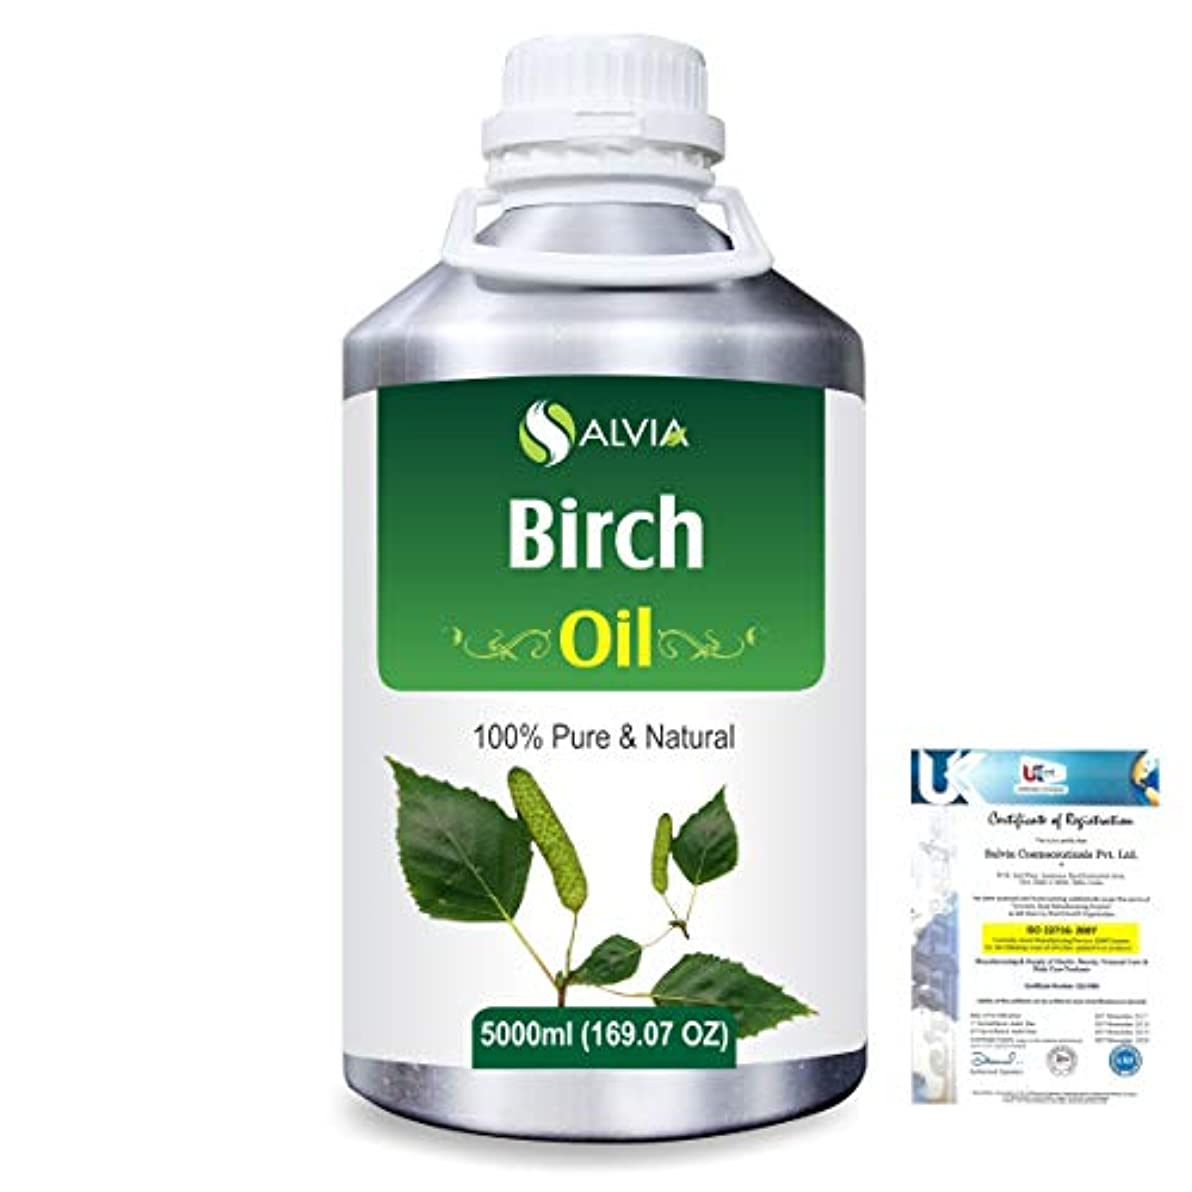 可愛い病な不安定Birch (Betula Pendula,Betula Alba) 100% Natural Pure Essential Oil 5000ml/169fl.oz.